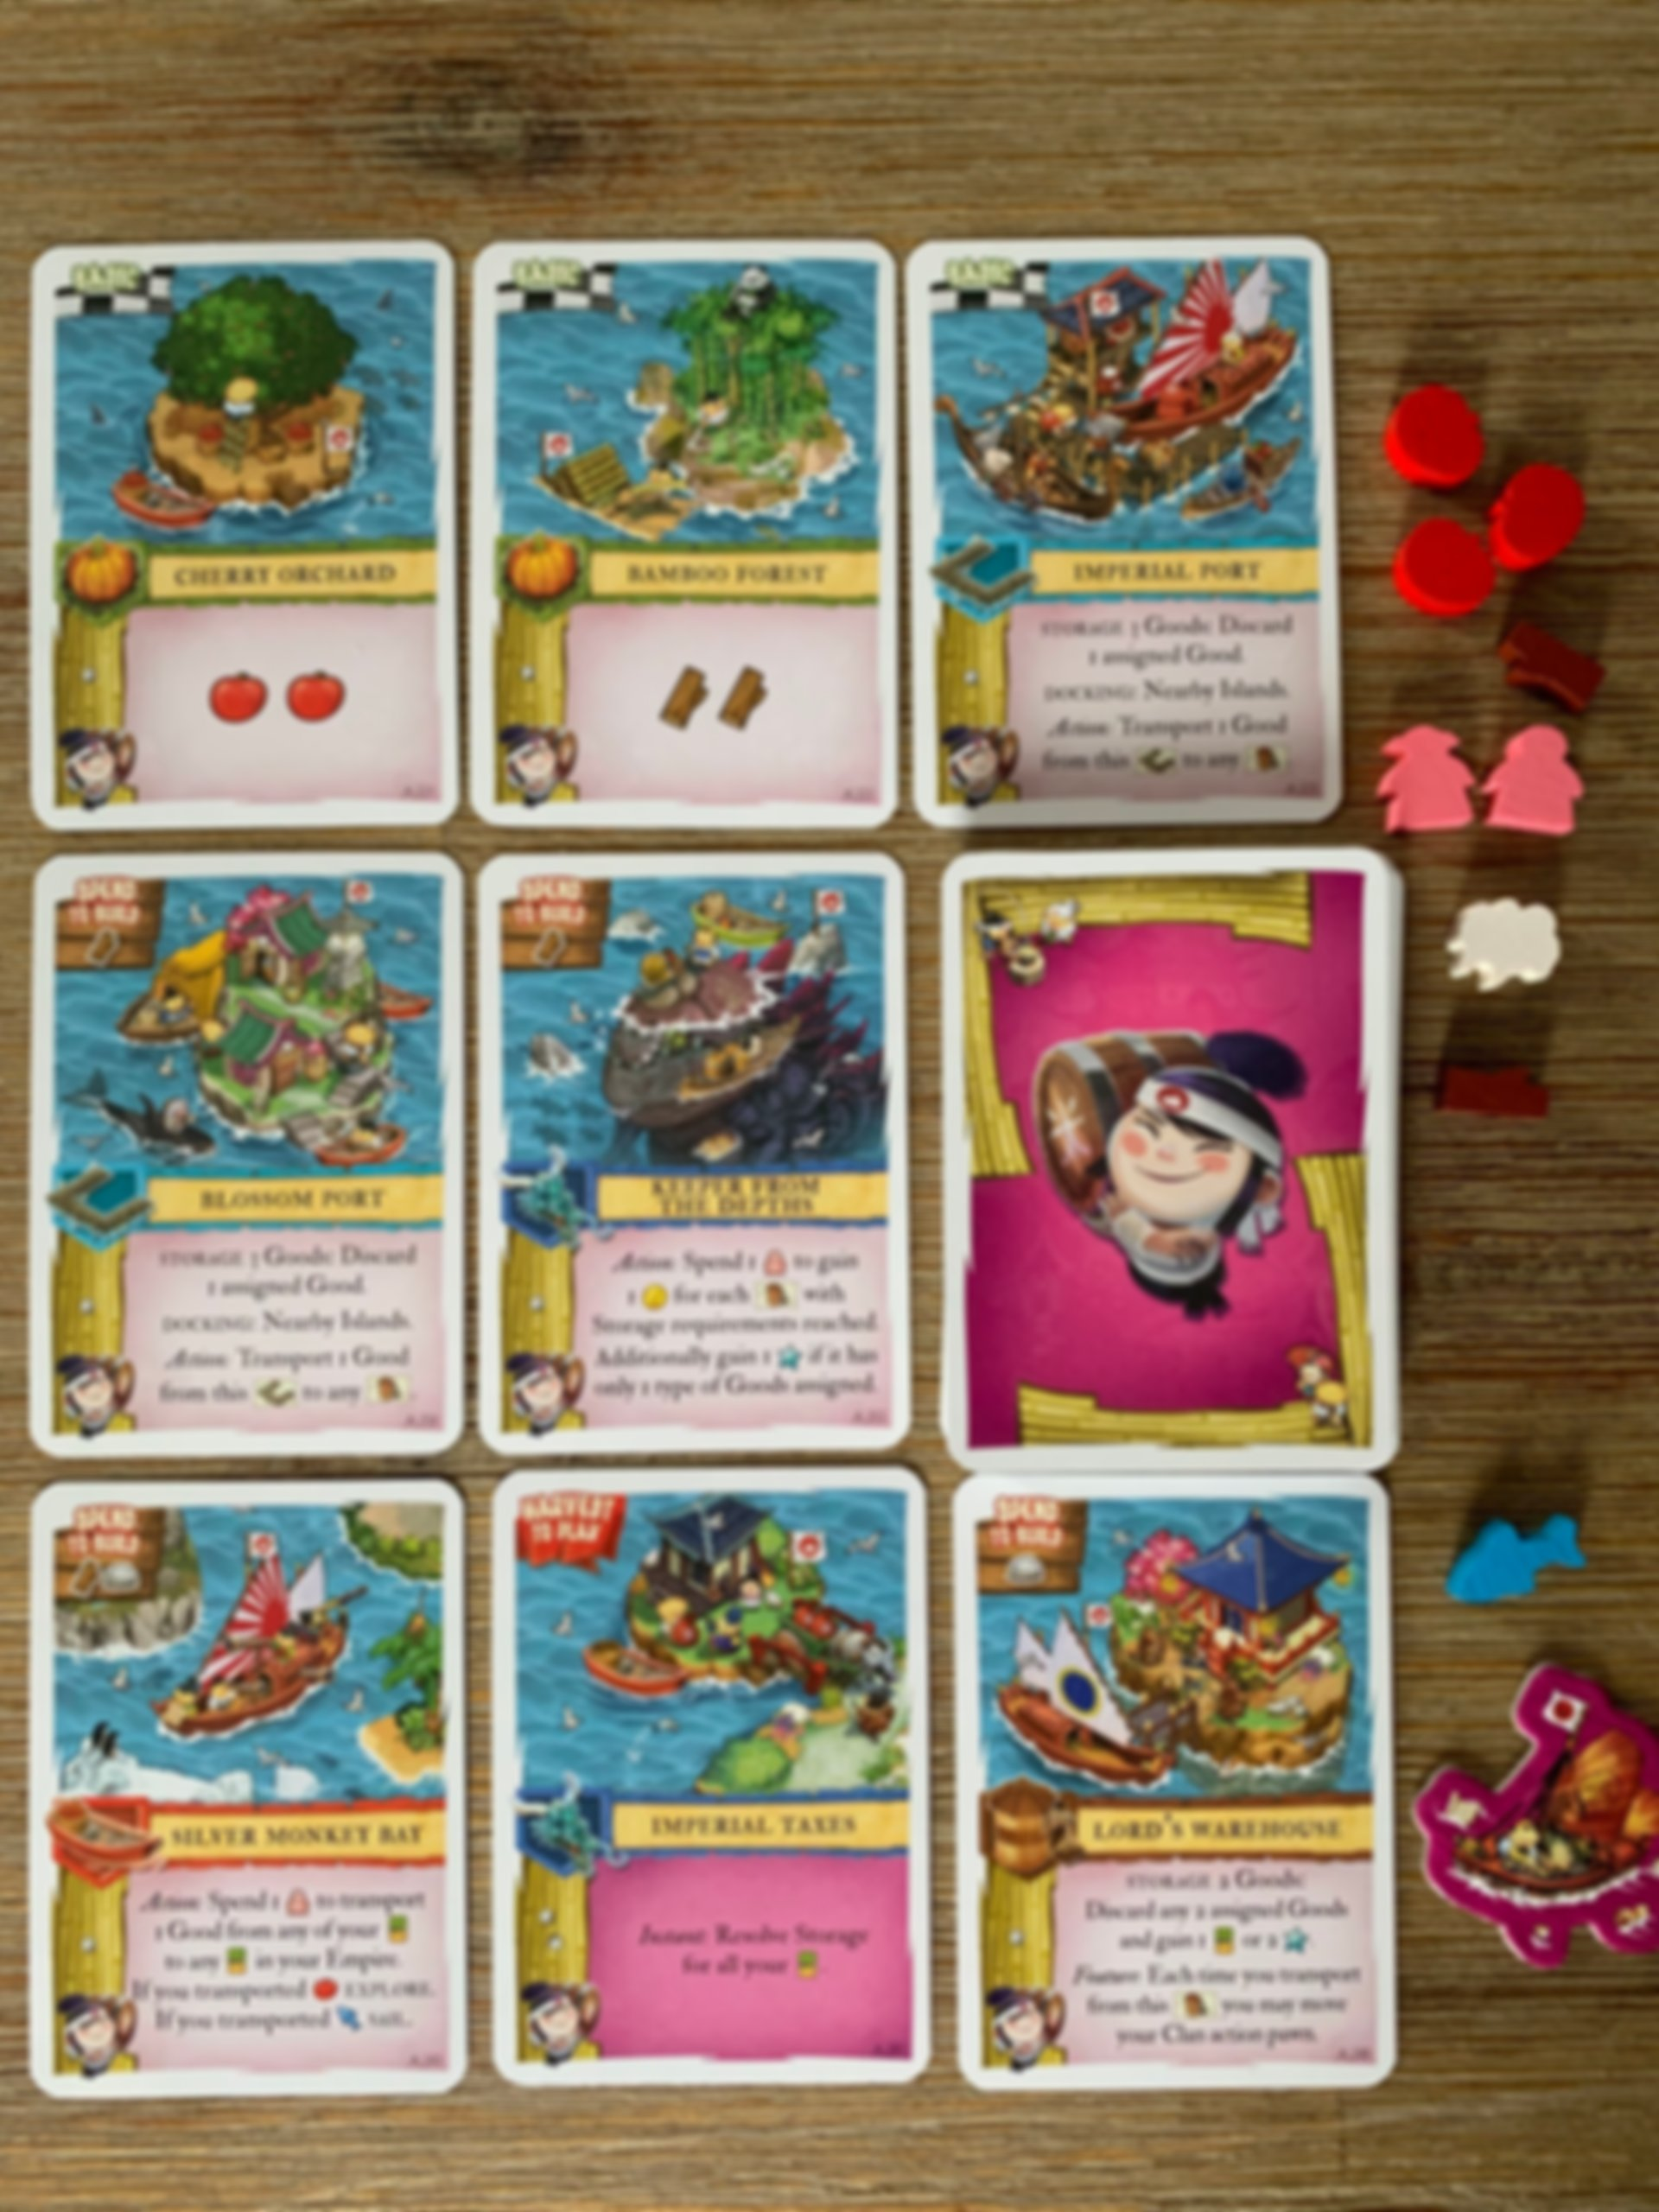 Imperial Settlers: Empires of the North - Japanese Islands components